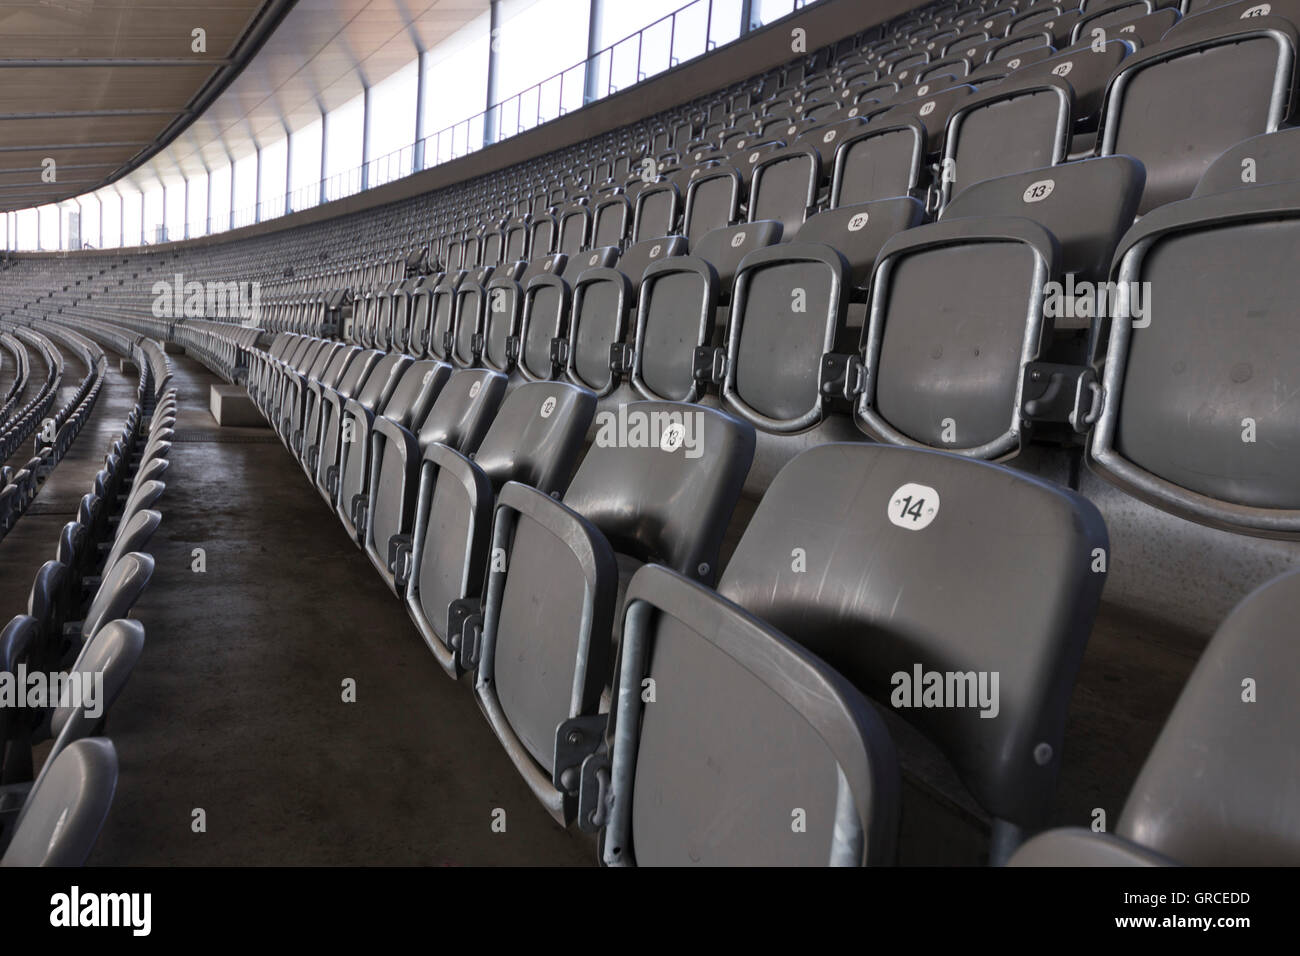 Rows Of Chairs In The Top Rank Of The Stadium - Stock Image